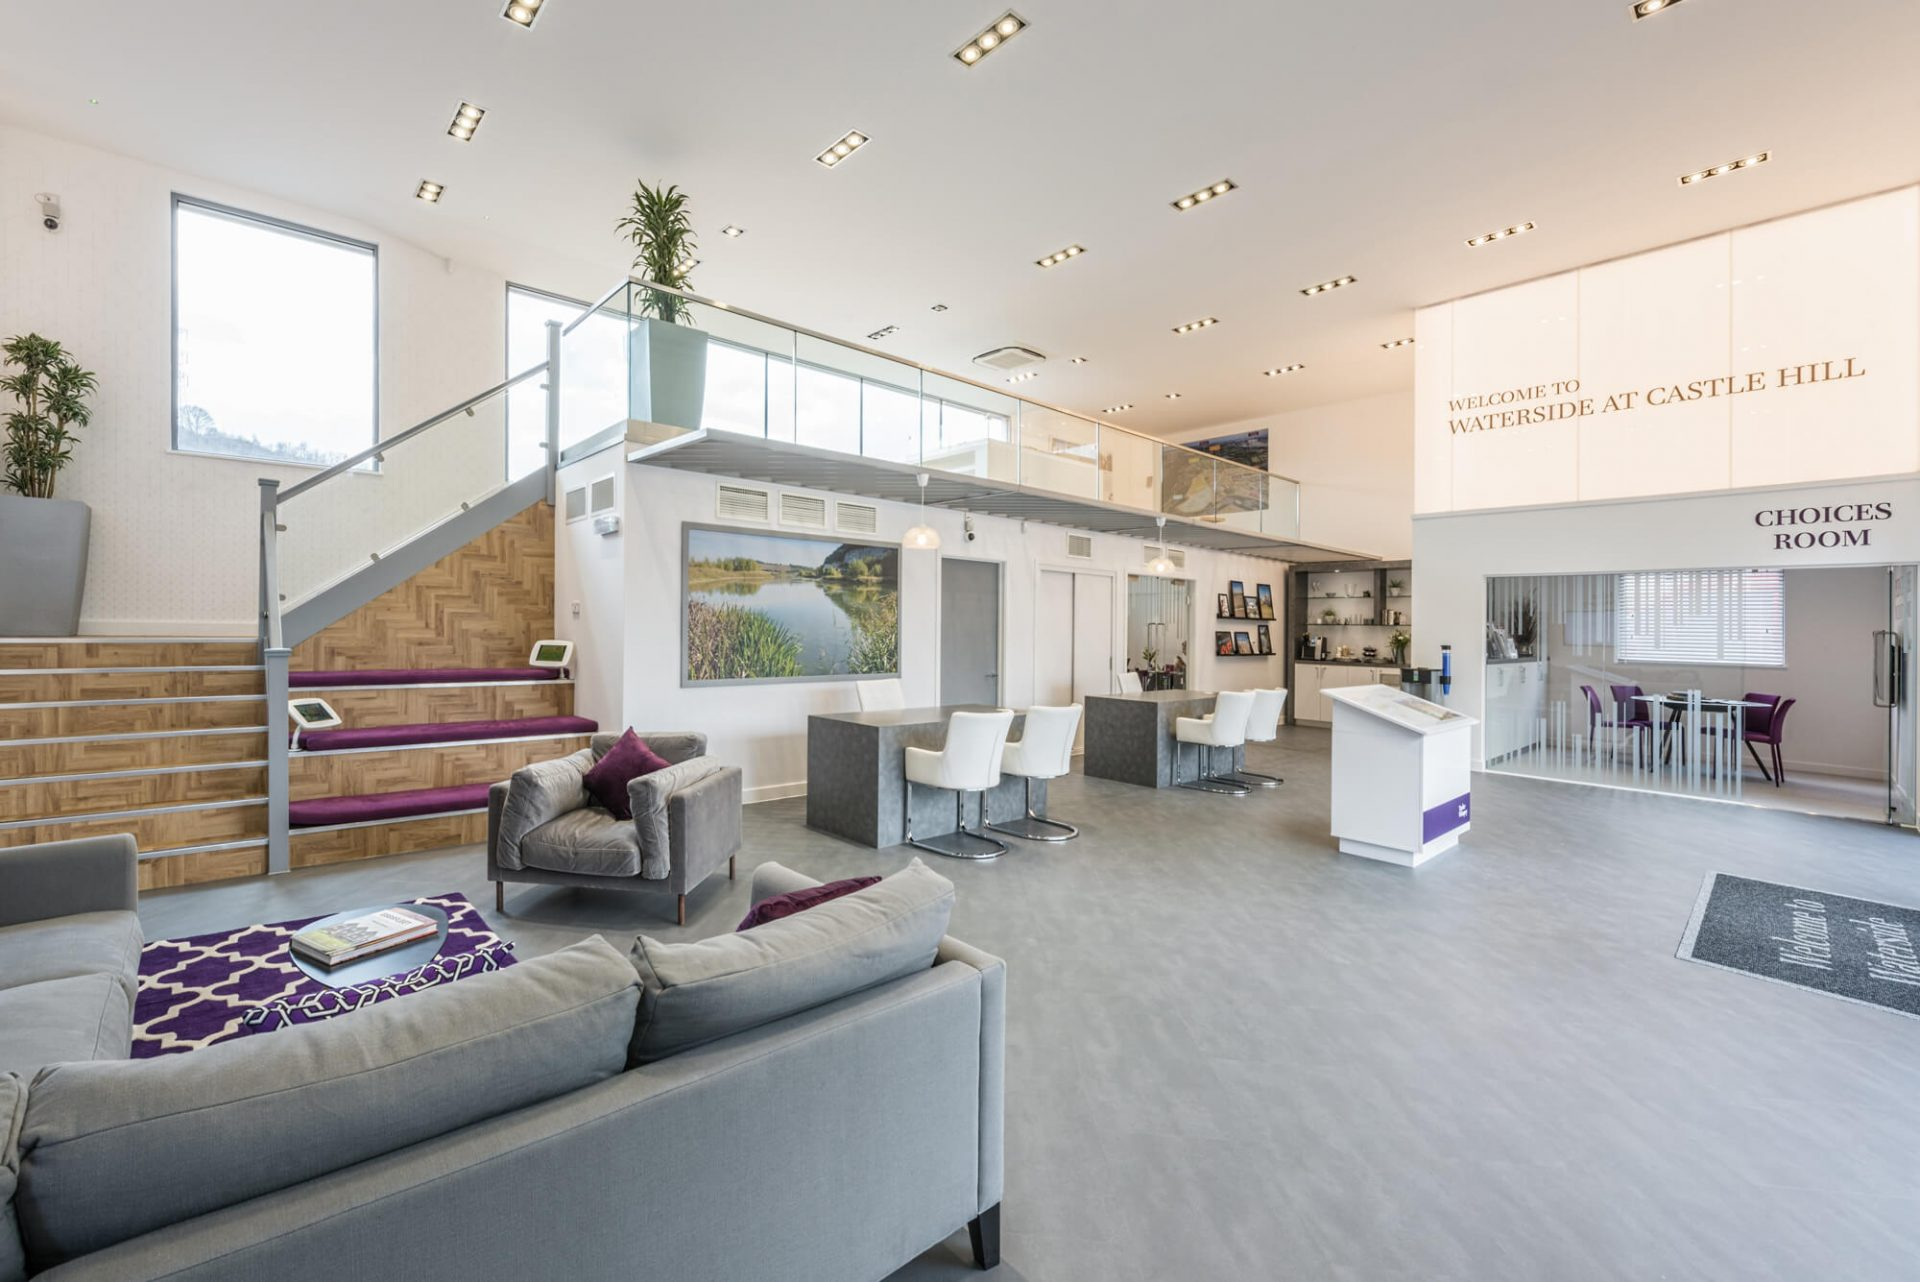 James Mercer's pick for #WorldPhotoDay, the marketing suite at Taylor Wimpey's Castle Hill development